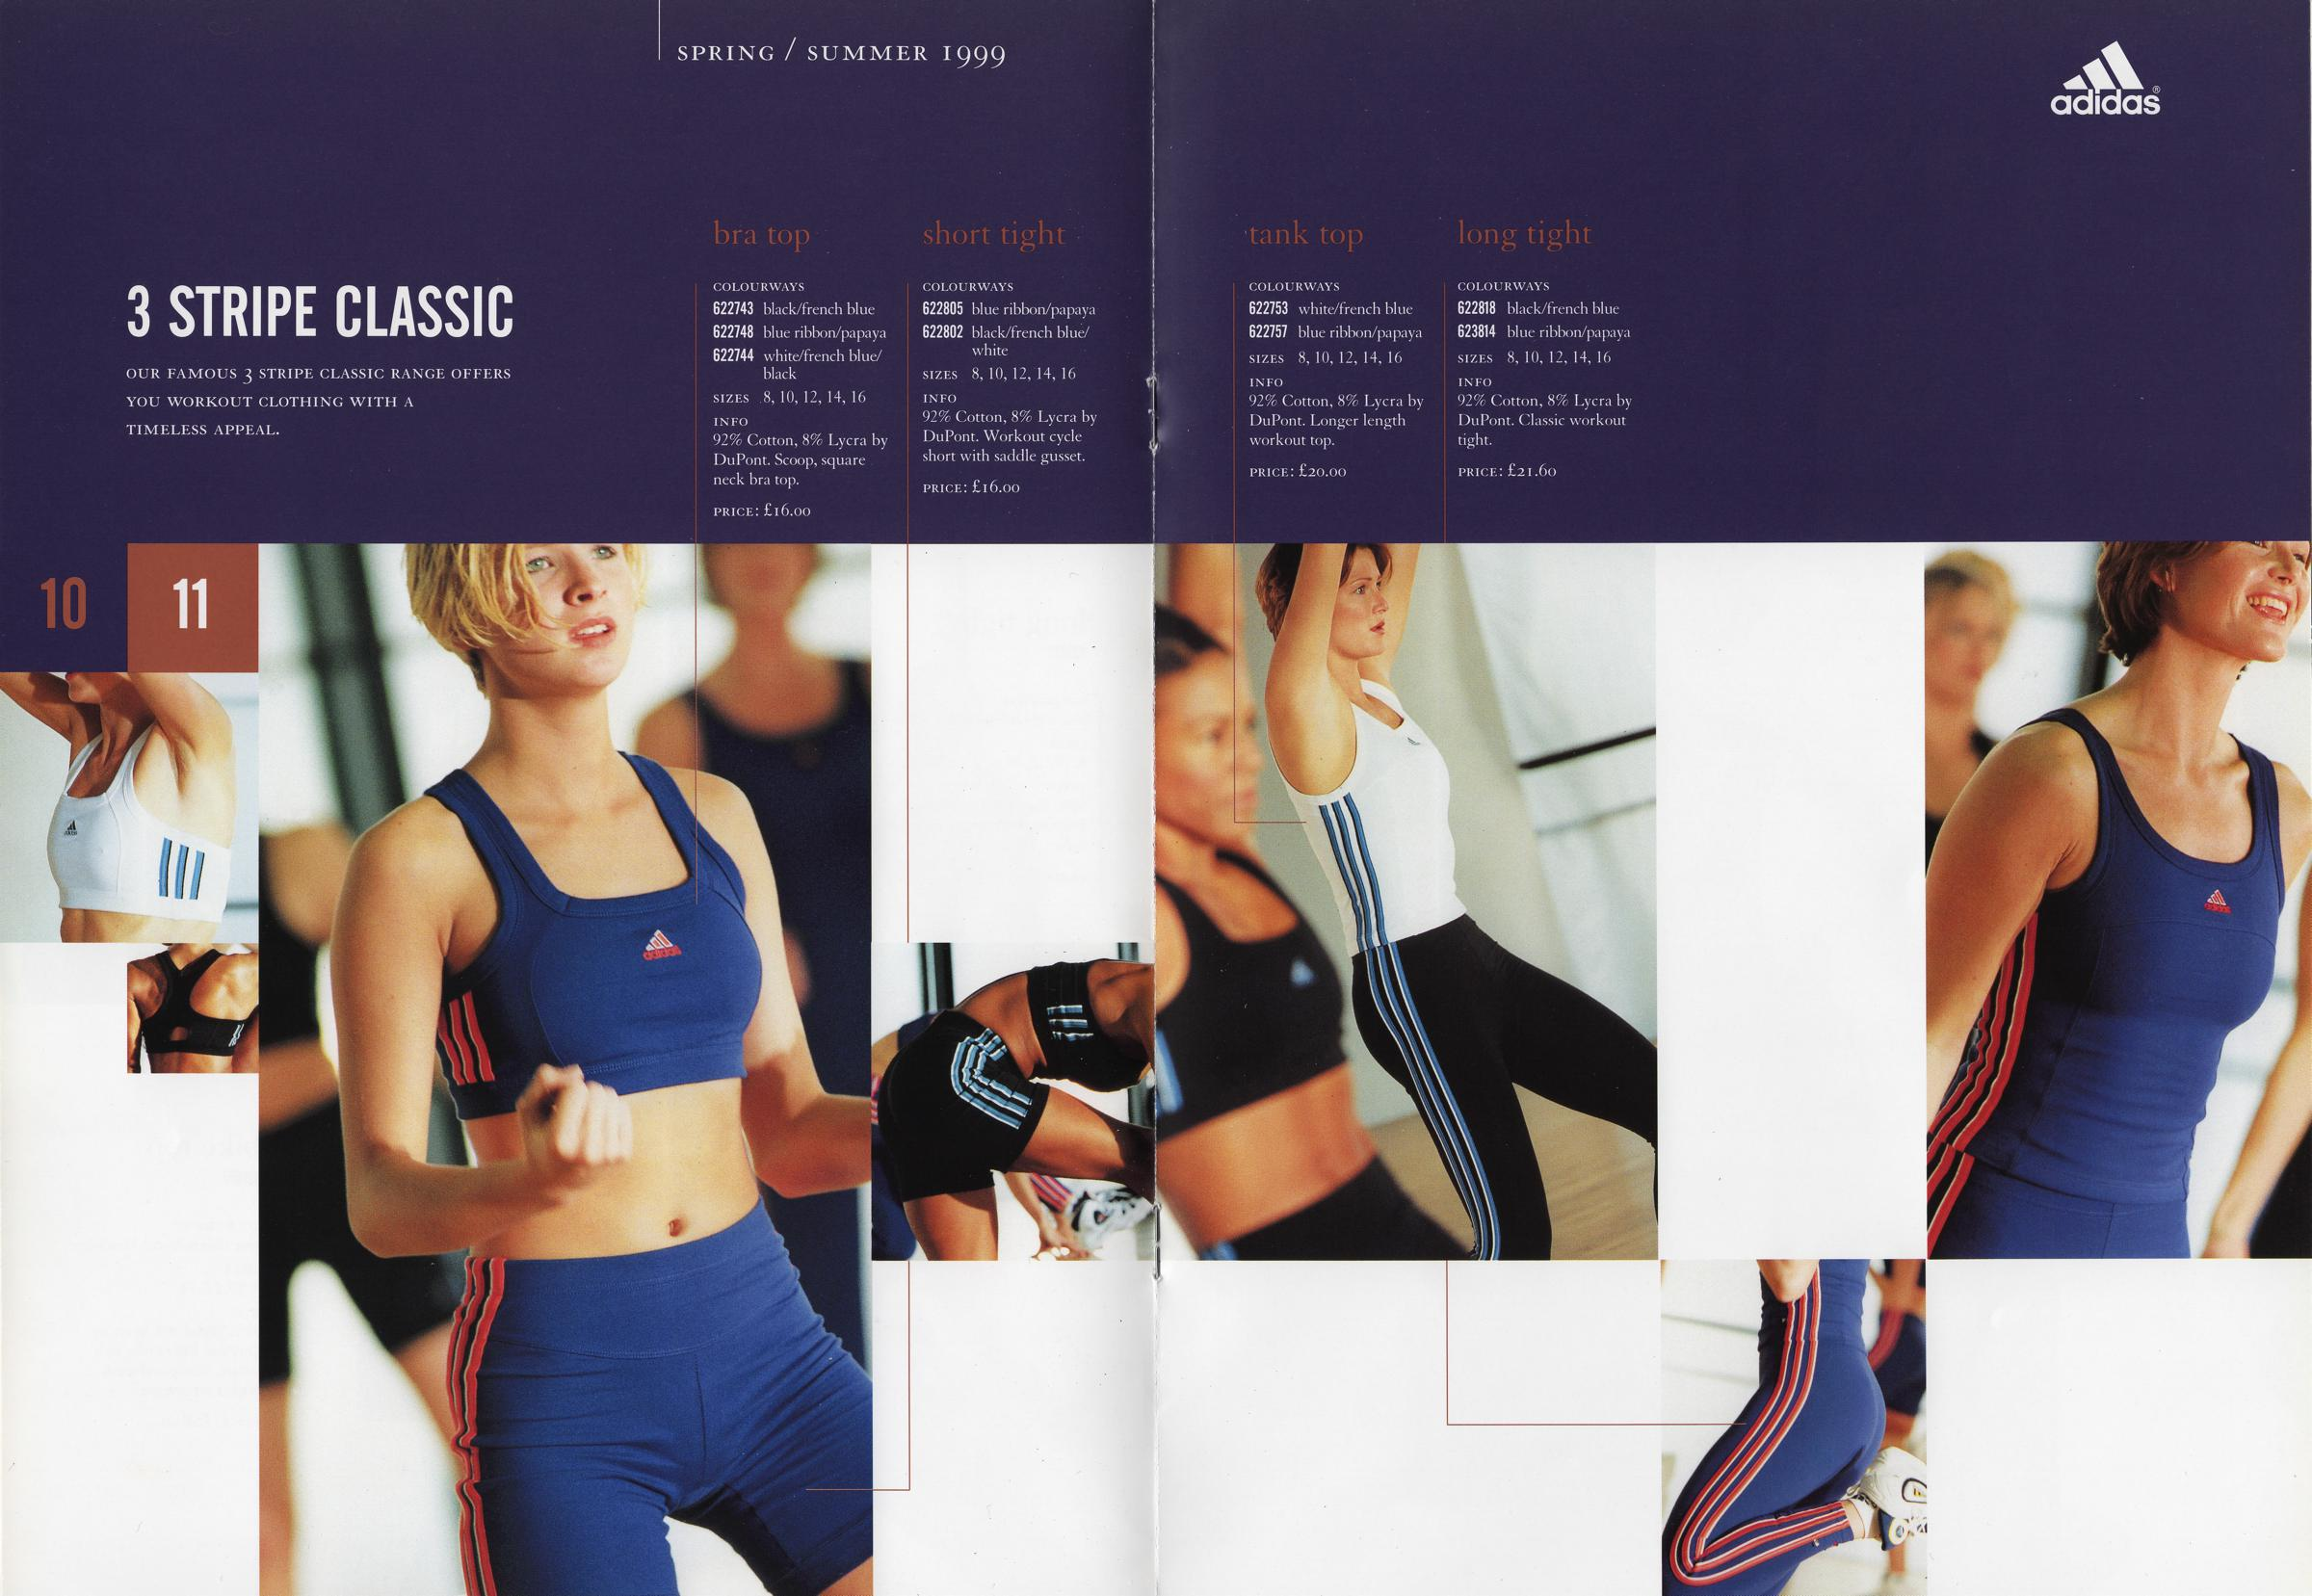 Ru-tee Block - Adidas - Instructor Range Magazine - Spring-Summer 1999 - Page 11